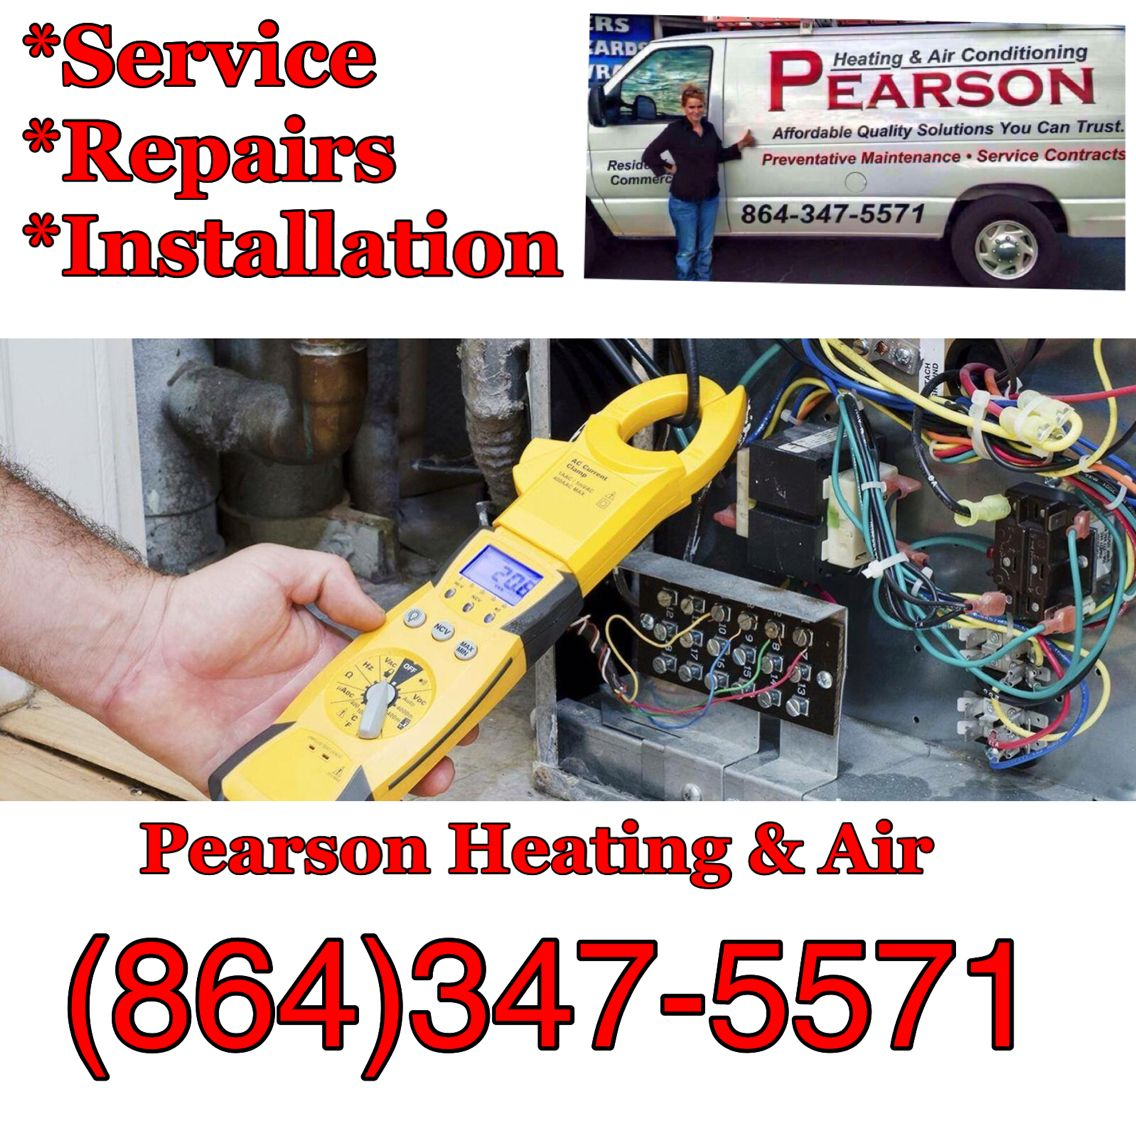 We Ll Keep You Warm At Pearson Heating Air We Provide The